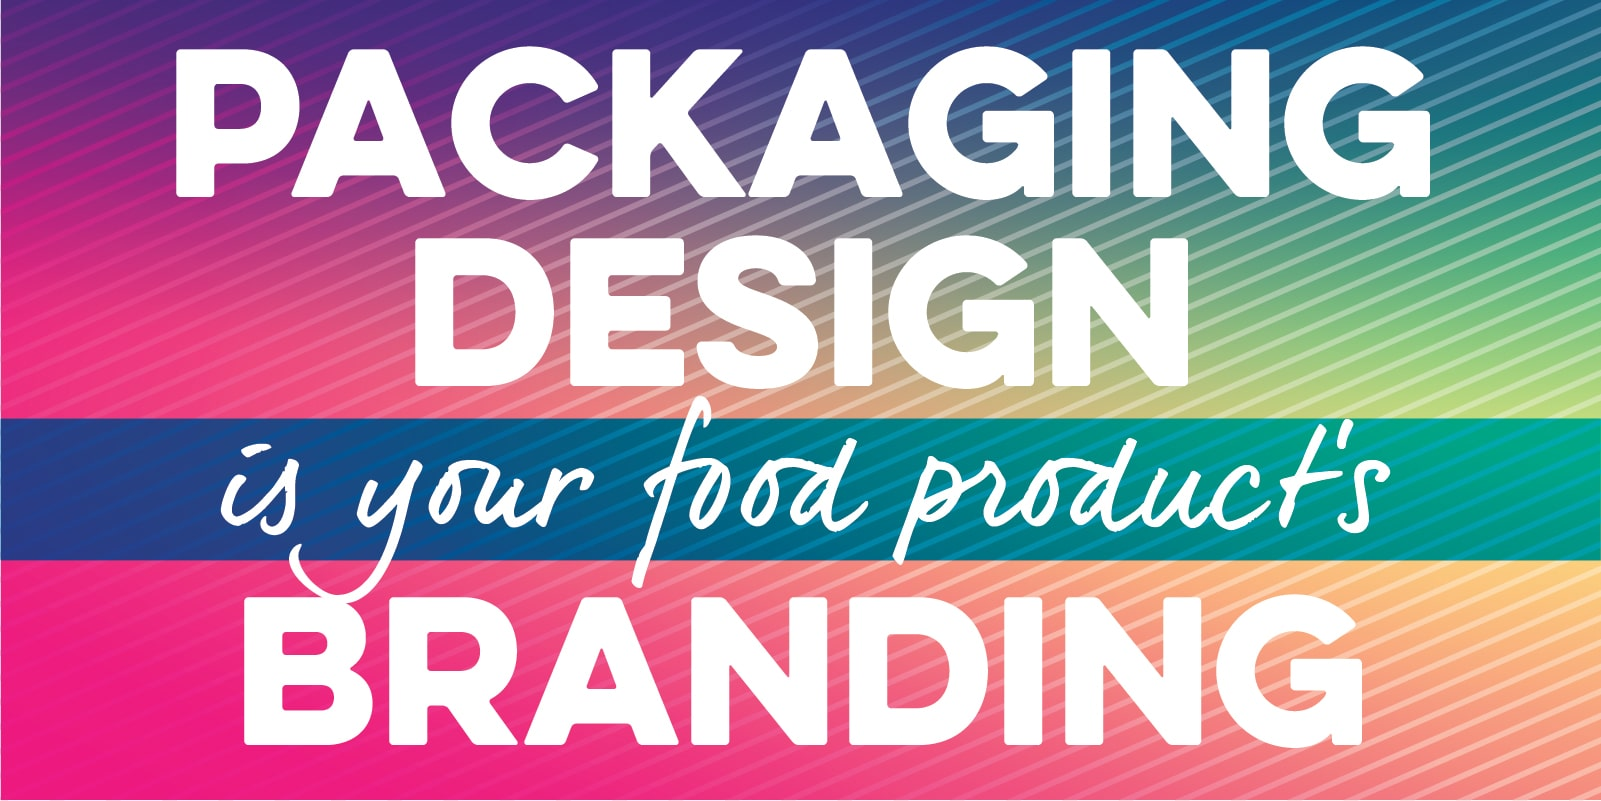 Packaging Design is Your Food Product's Branding